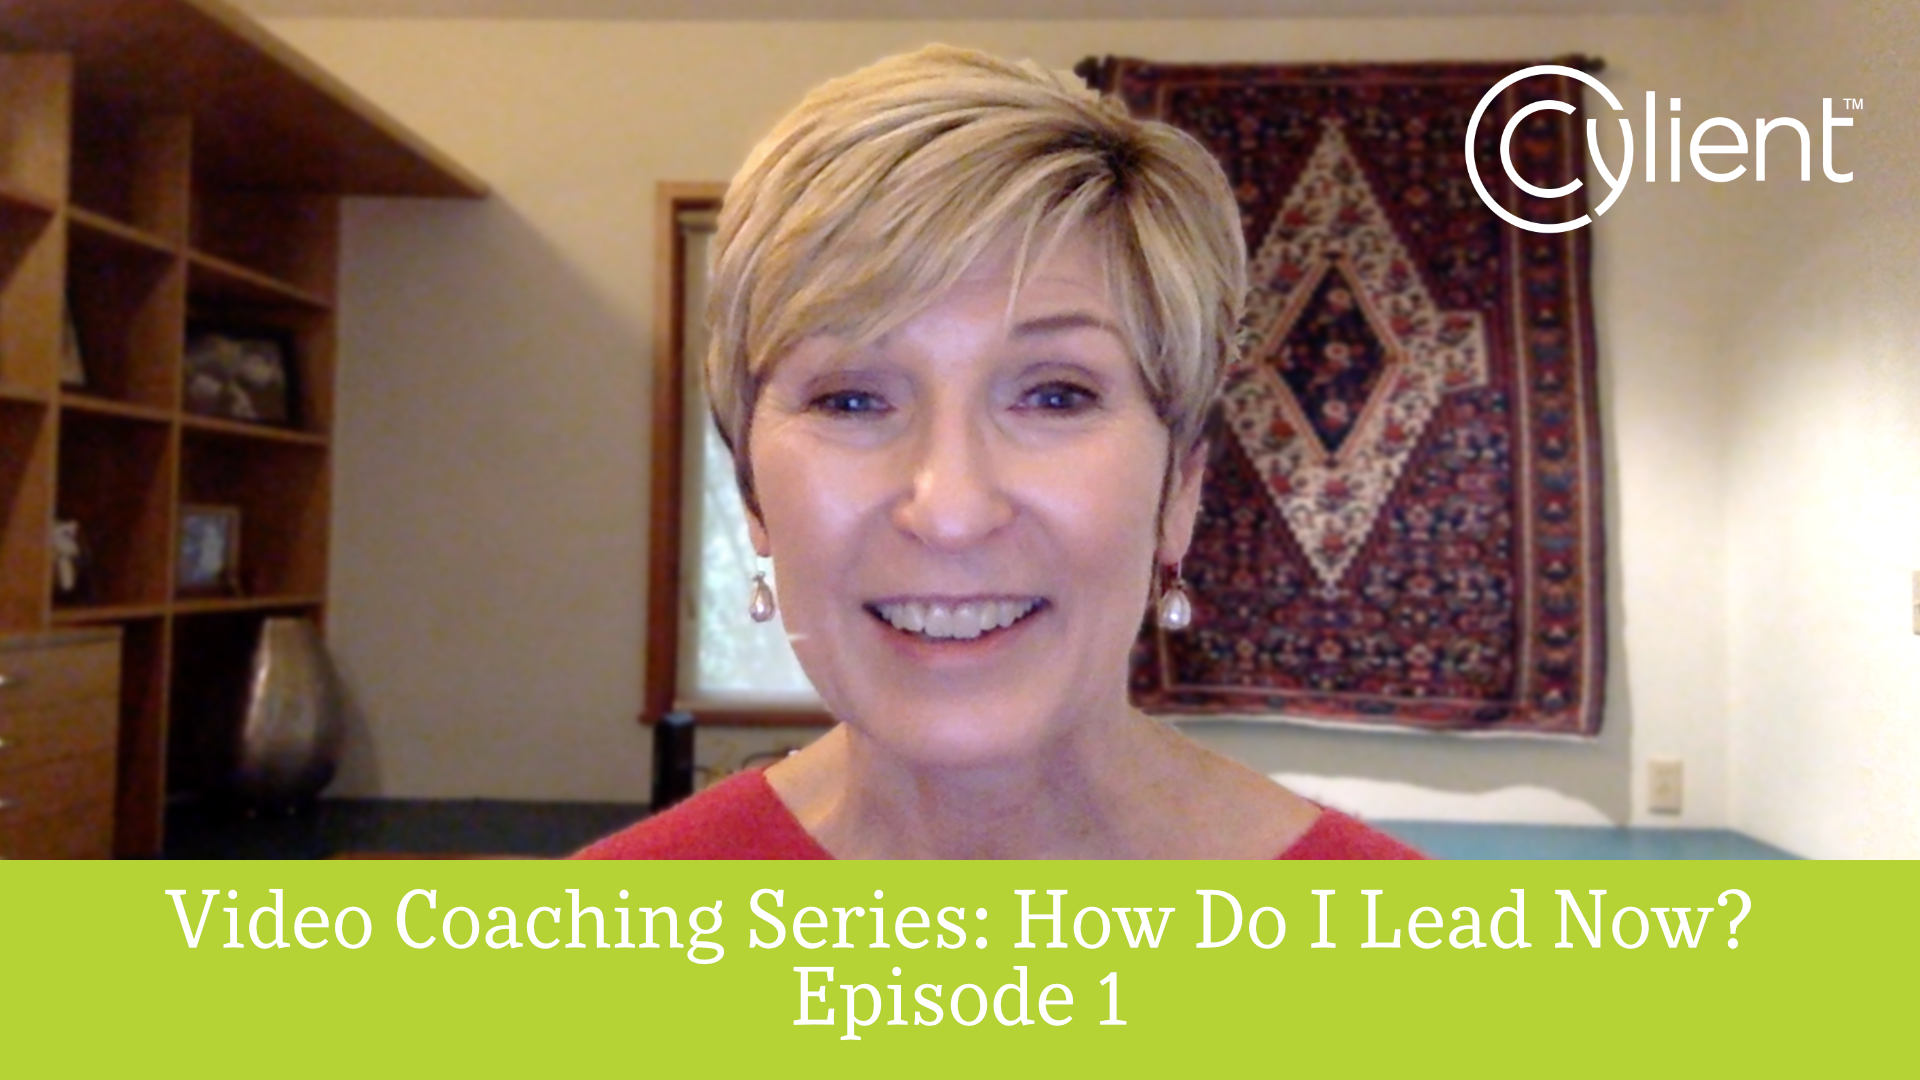 Video Coaching Series: How Do I Lead Now? Episode 1